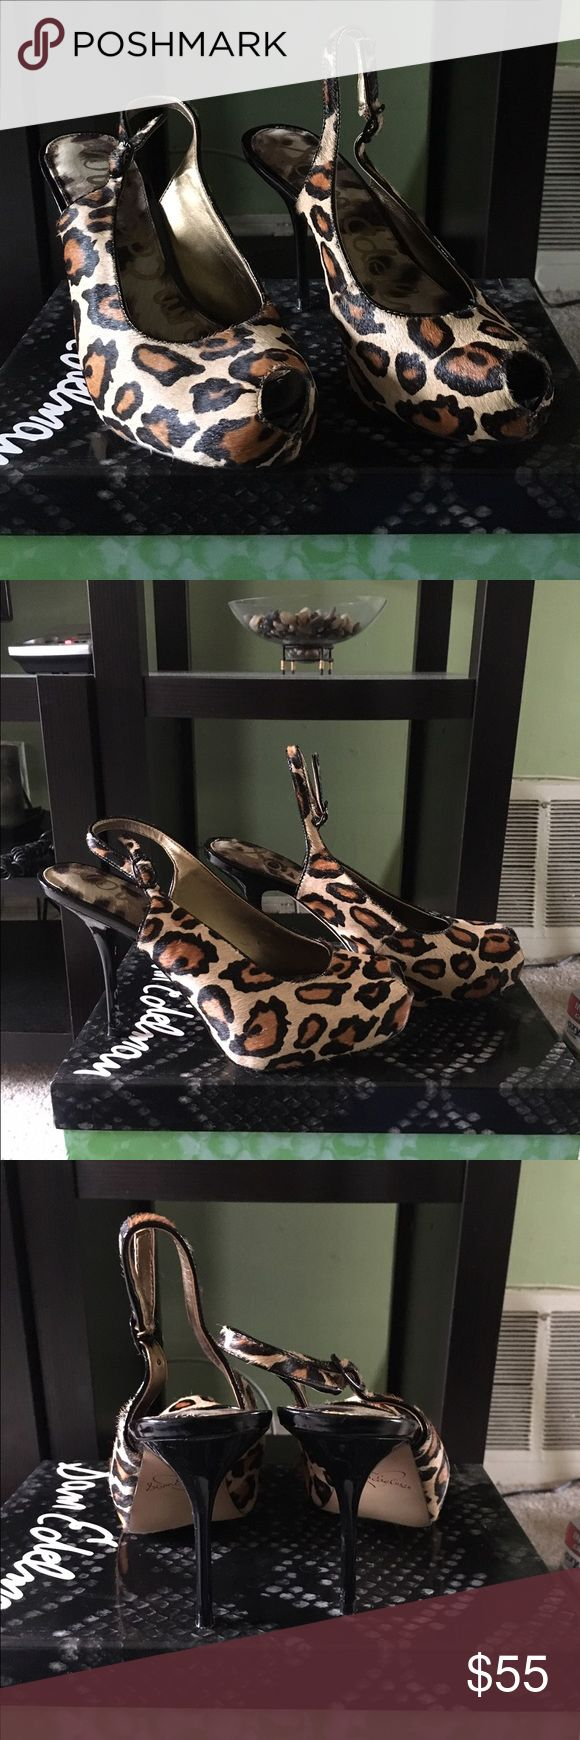 Sam Edelman Leopard Print Pumps Sam Edelman Evelyn Leopard Print Peep Toe Slingback Pumps. 3 1/2 inches. Worn once. In excellent condition. Sam Edelman Shoes Heels